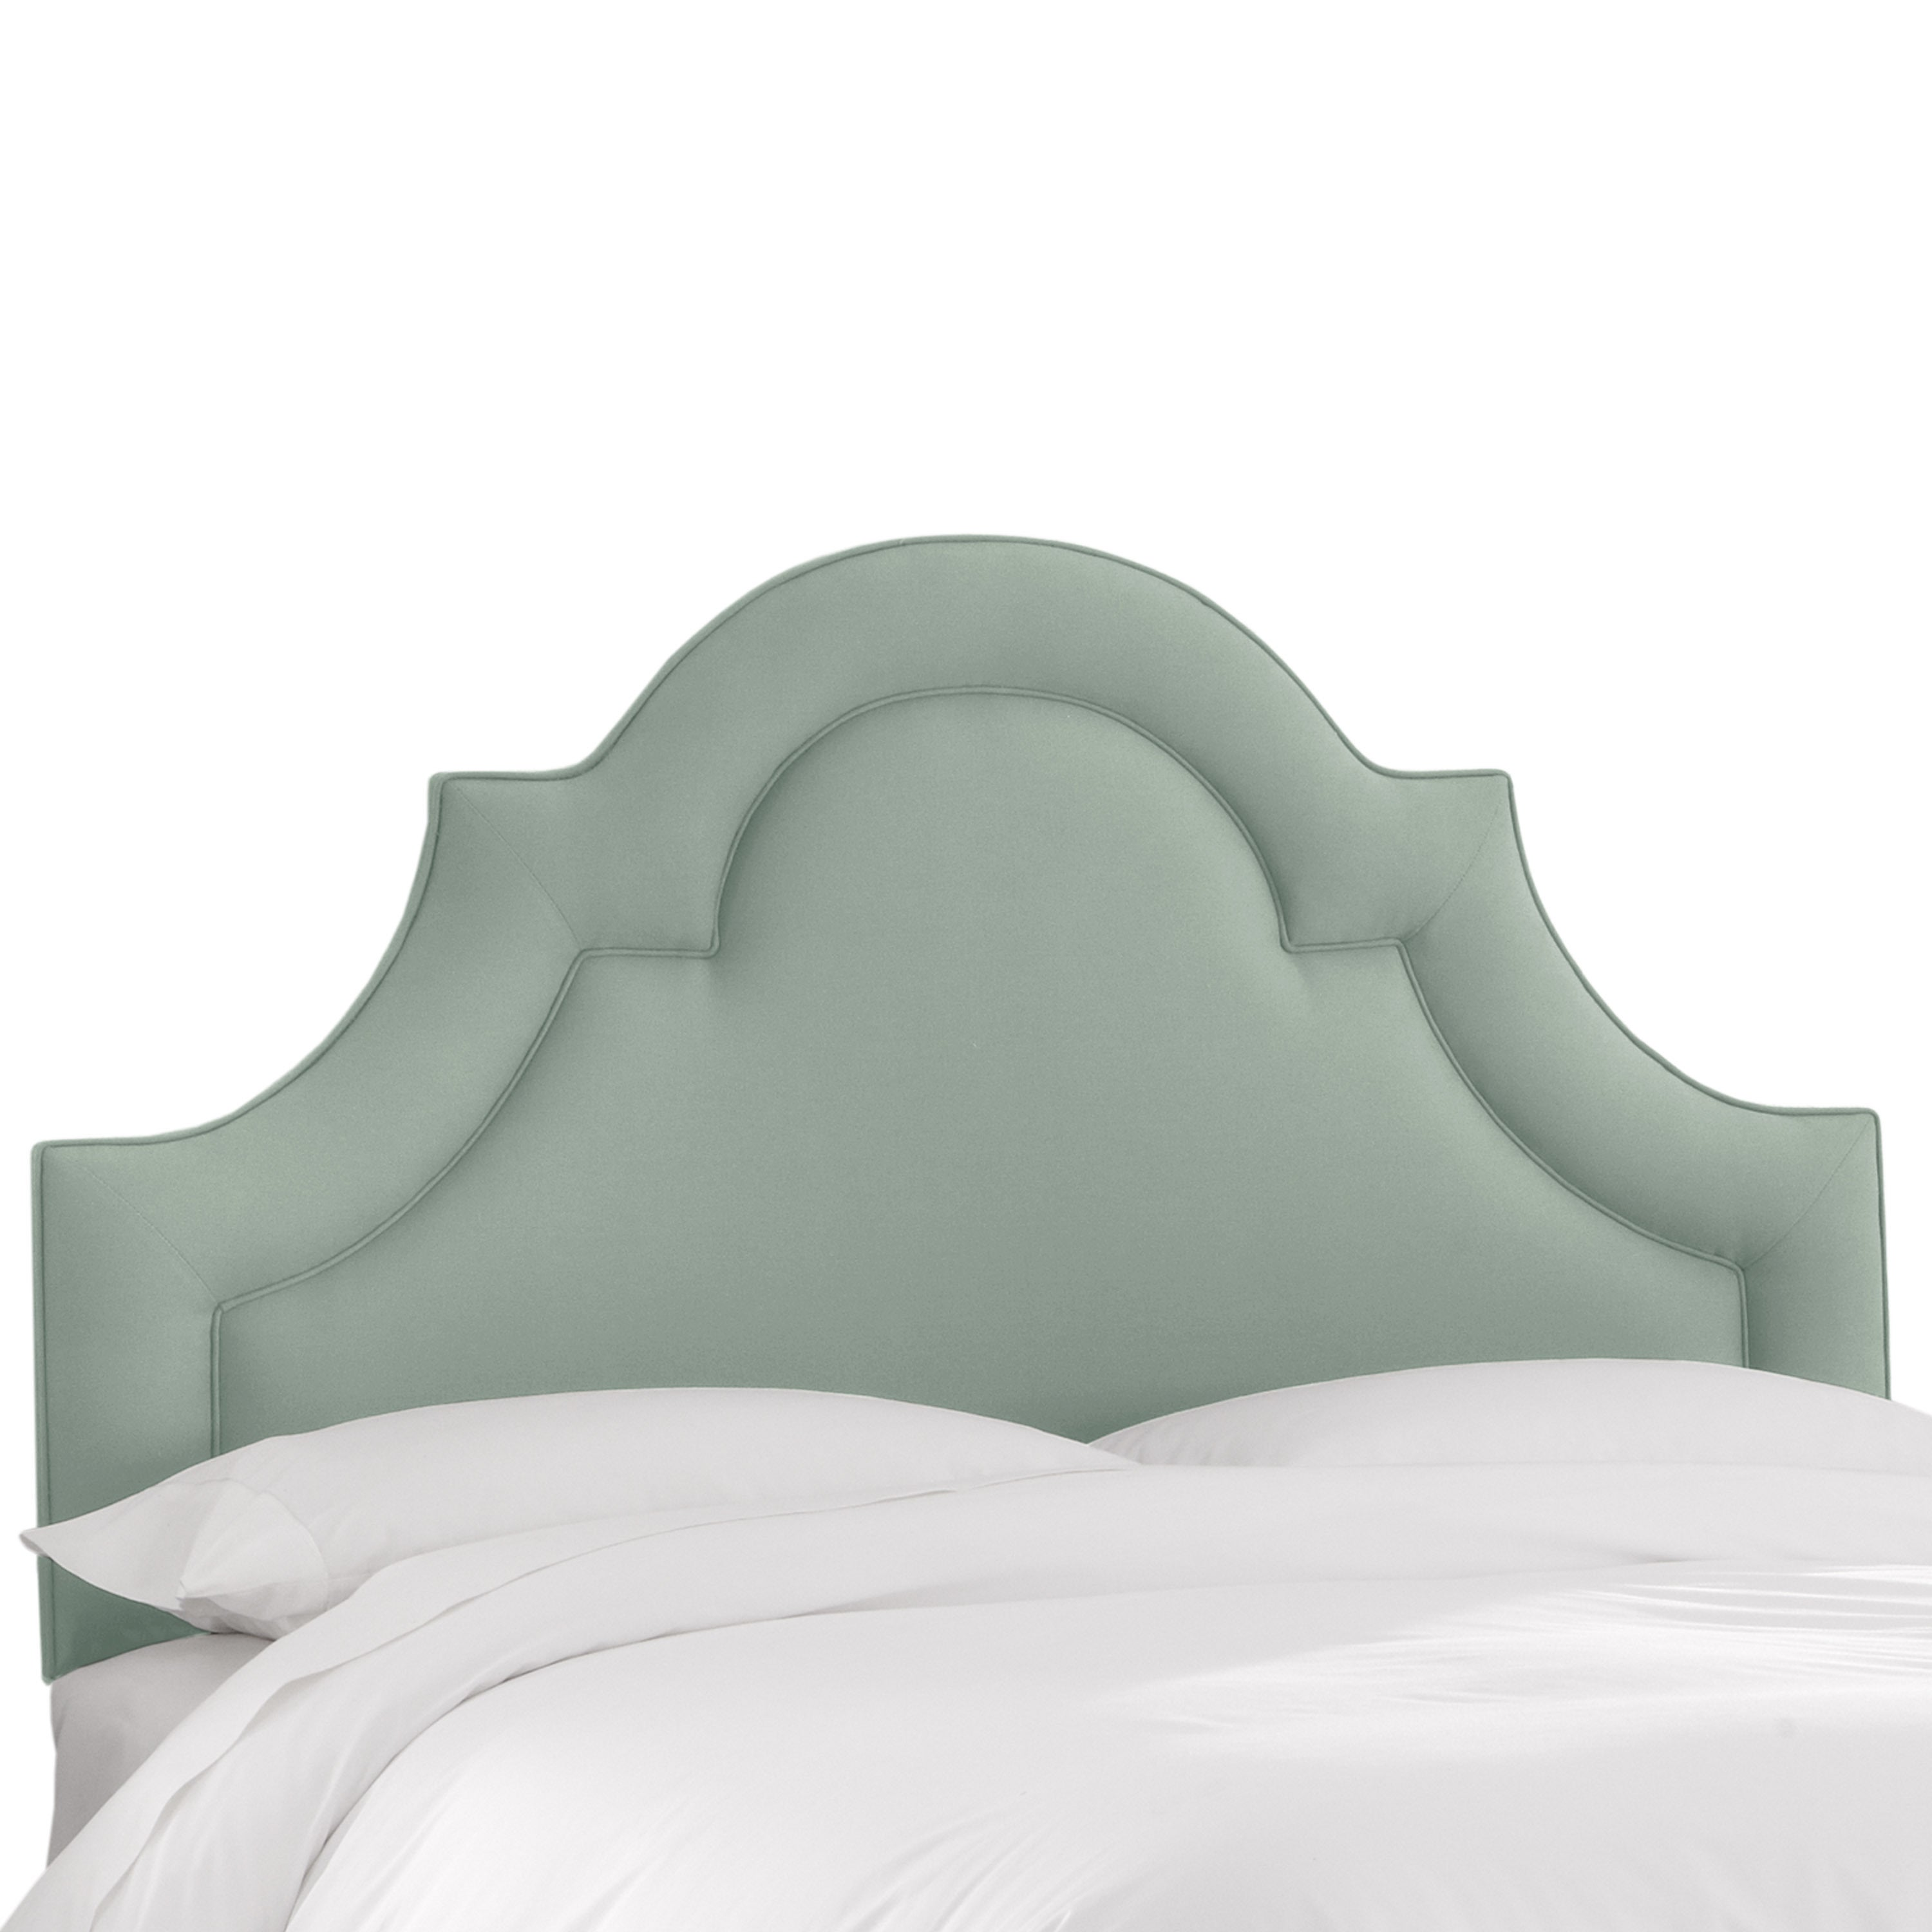 Shop skyline furniture linen swedish blue arched border headboard on sale free shipping today overstock com 12751816